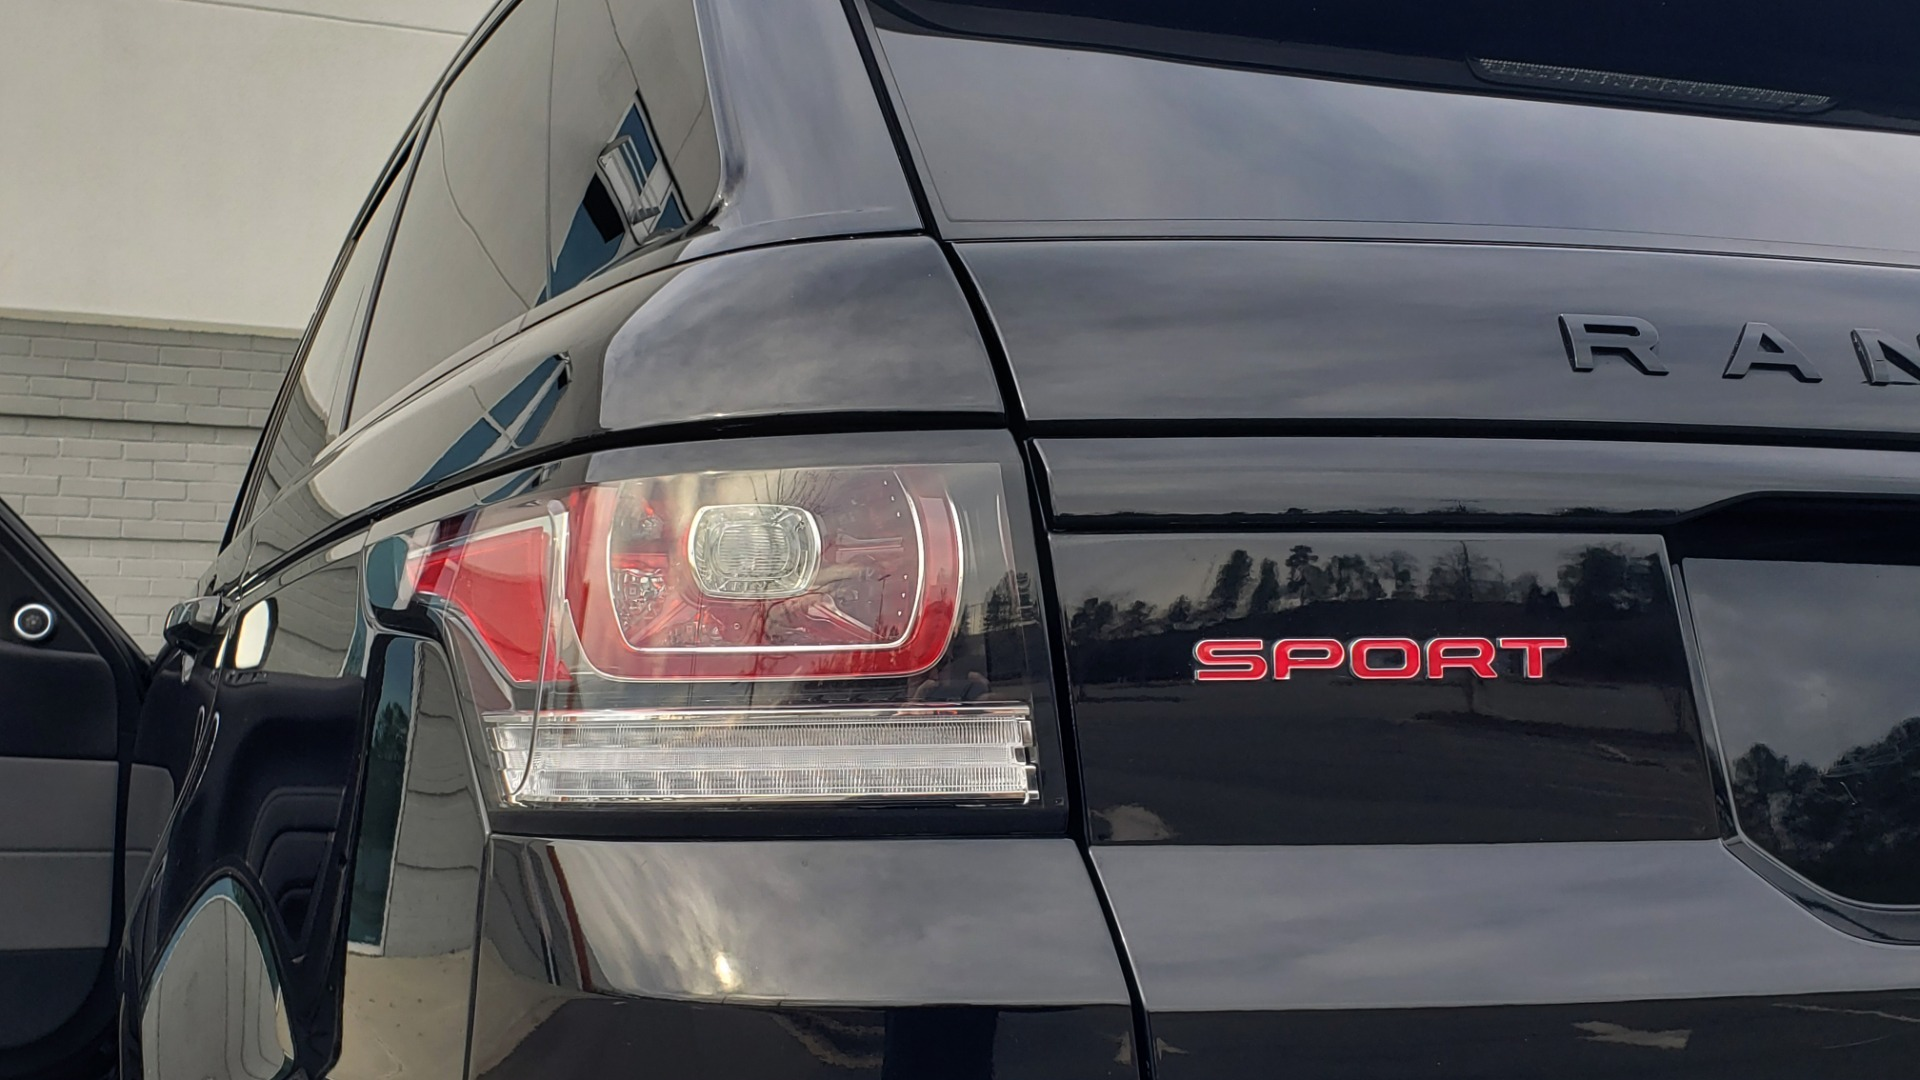 Used 2017 Land Rover RANGE ROVER SPORT HSE DYNAMIC / SC V6 / NAV / MERIDIAN / PANO-ROOF / REARVIEW for sale Sold at Formula Imports in Charlotte NC 28227 30